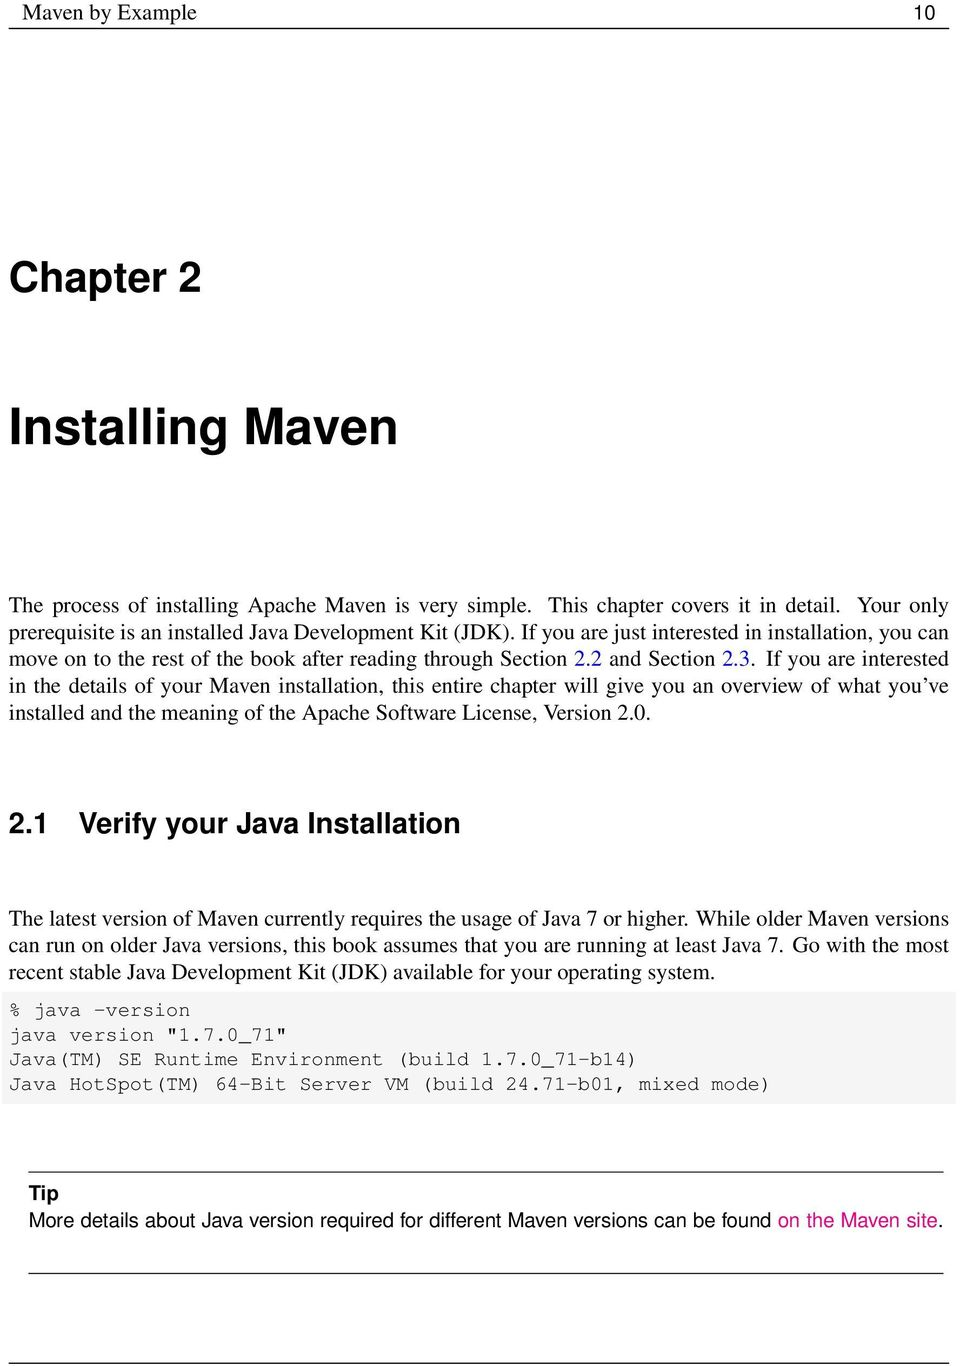 3. If you are interested in the details of your Maven installation, this entire chapter will give you an overview of what you ve installed and the meaning of the Apache Software License, Version 2.0.